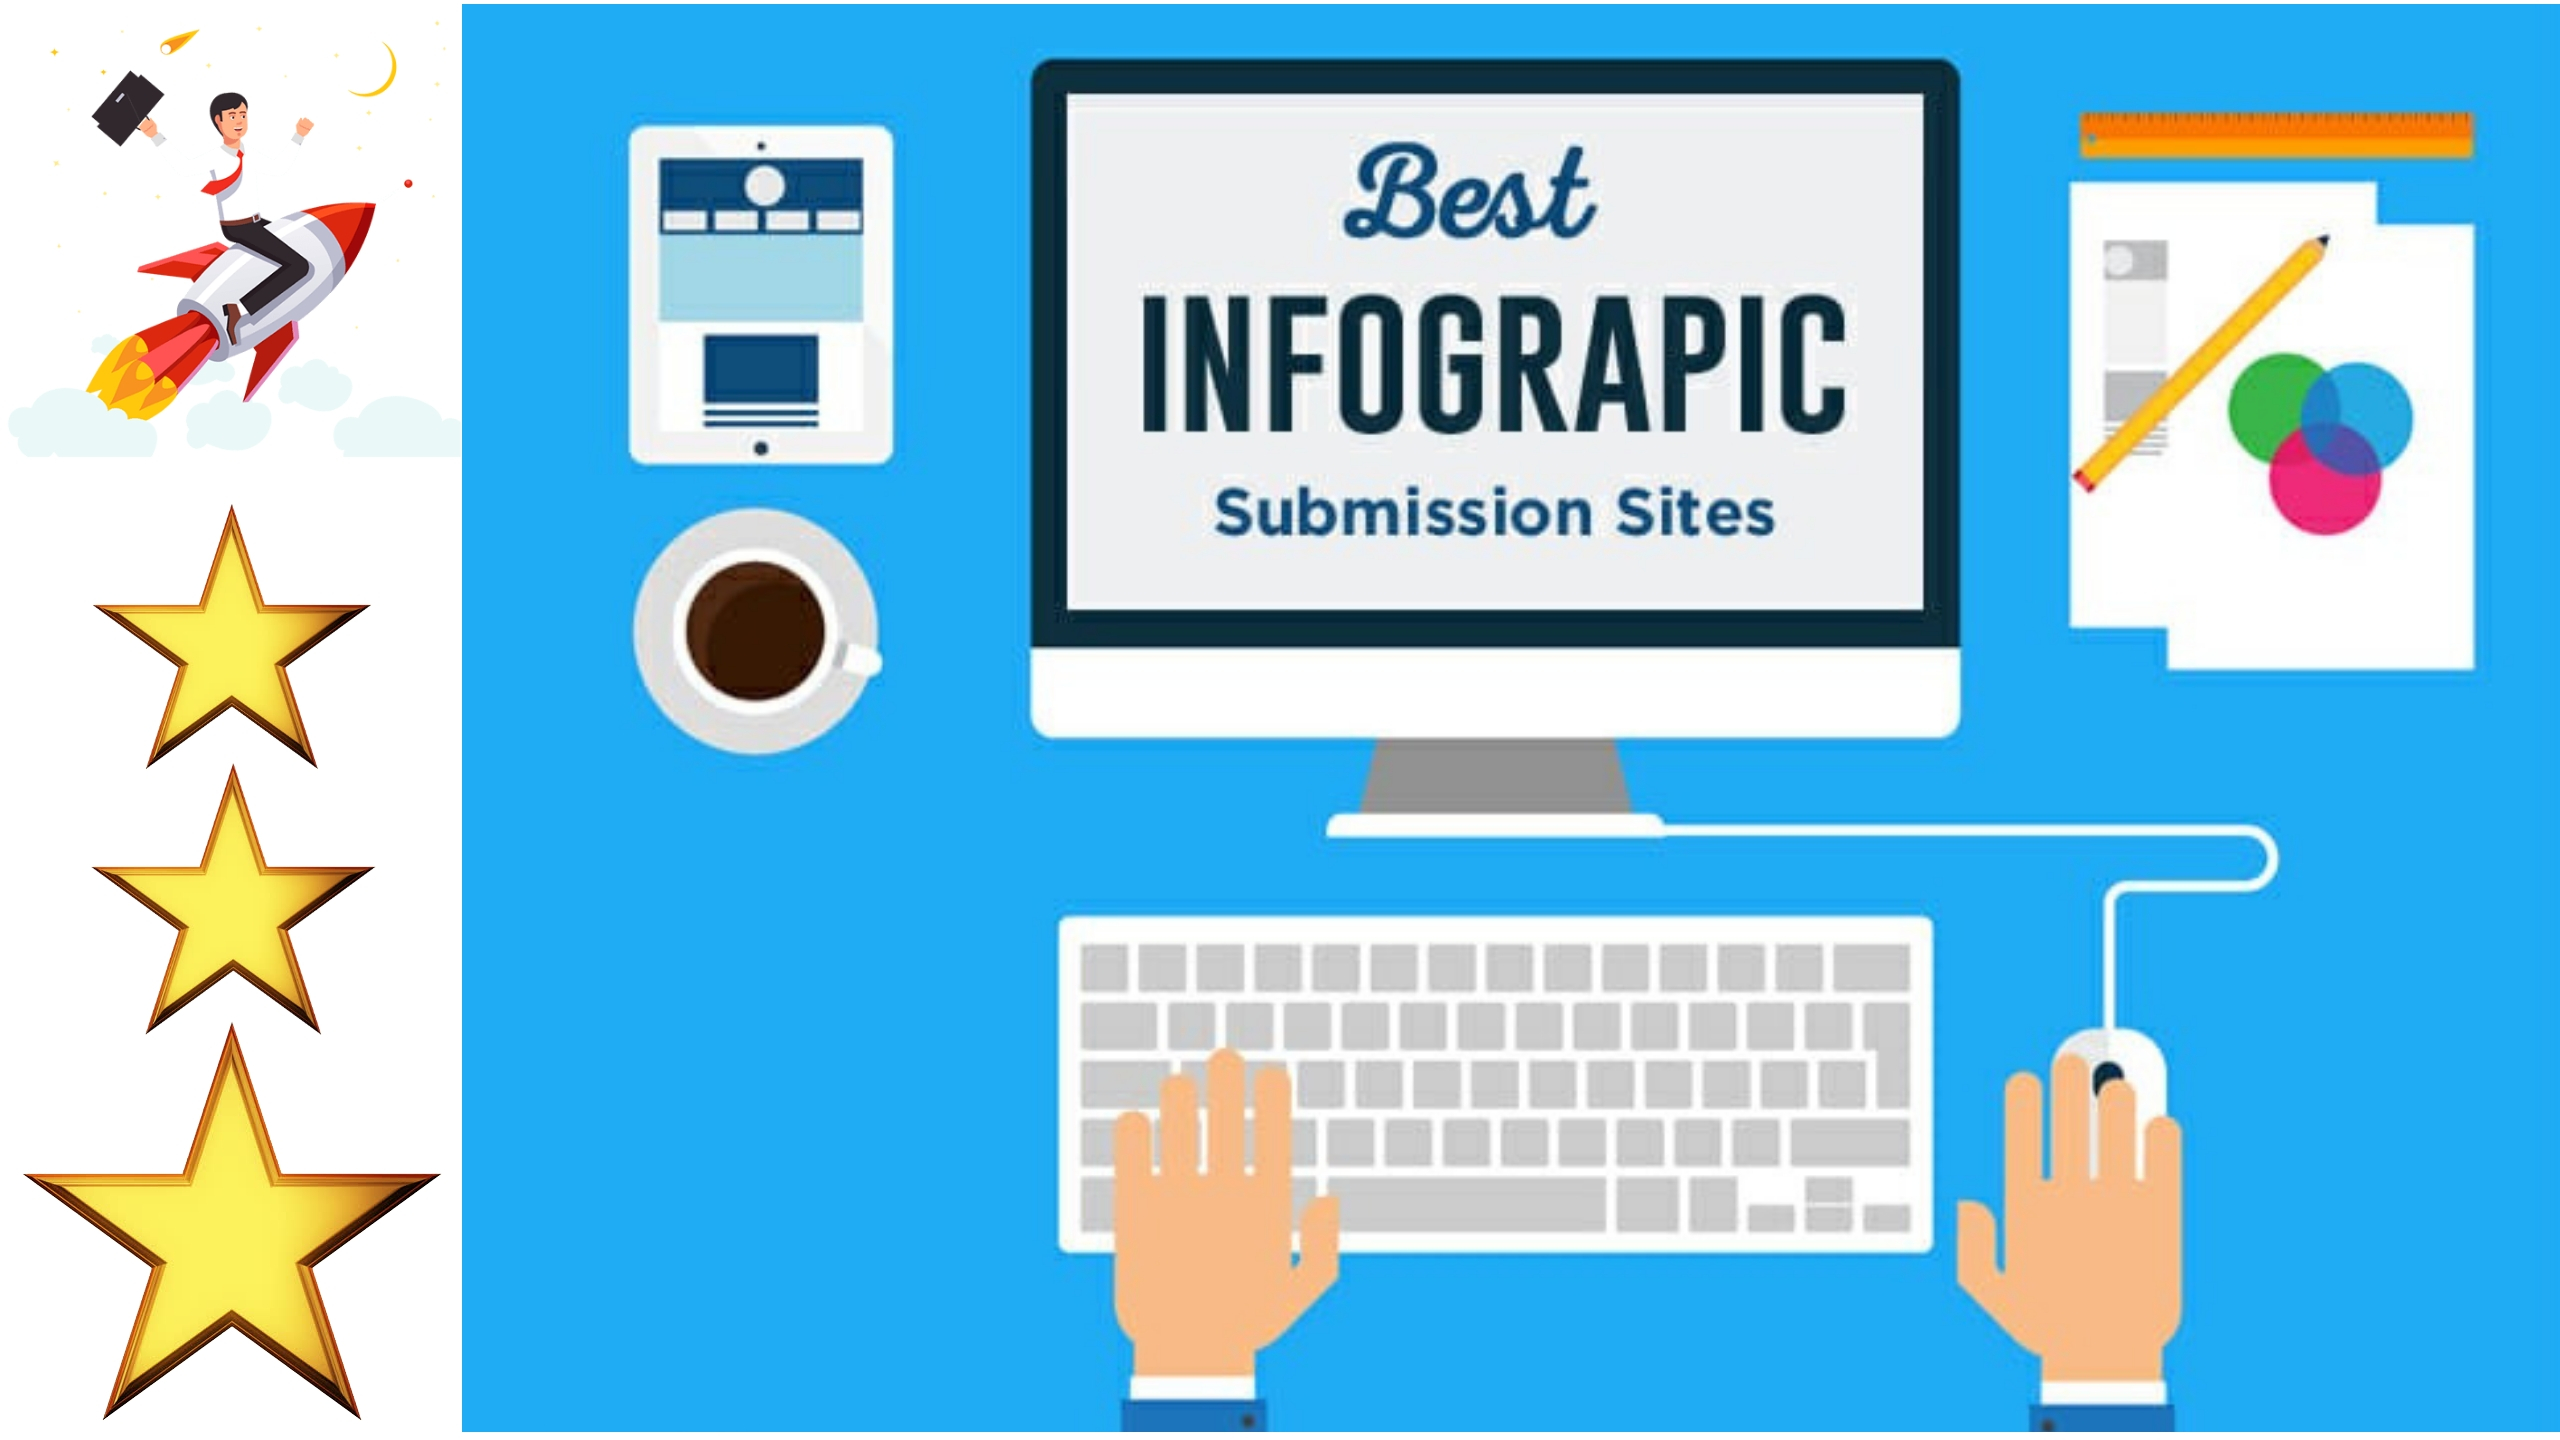 Info graphic Or Image Submission For 50+ High PR Sites